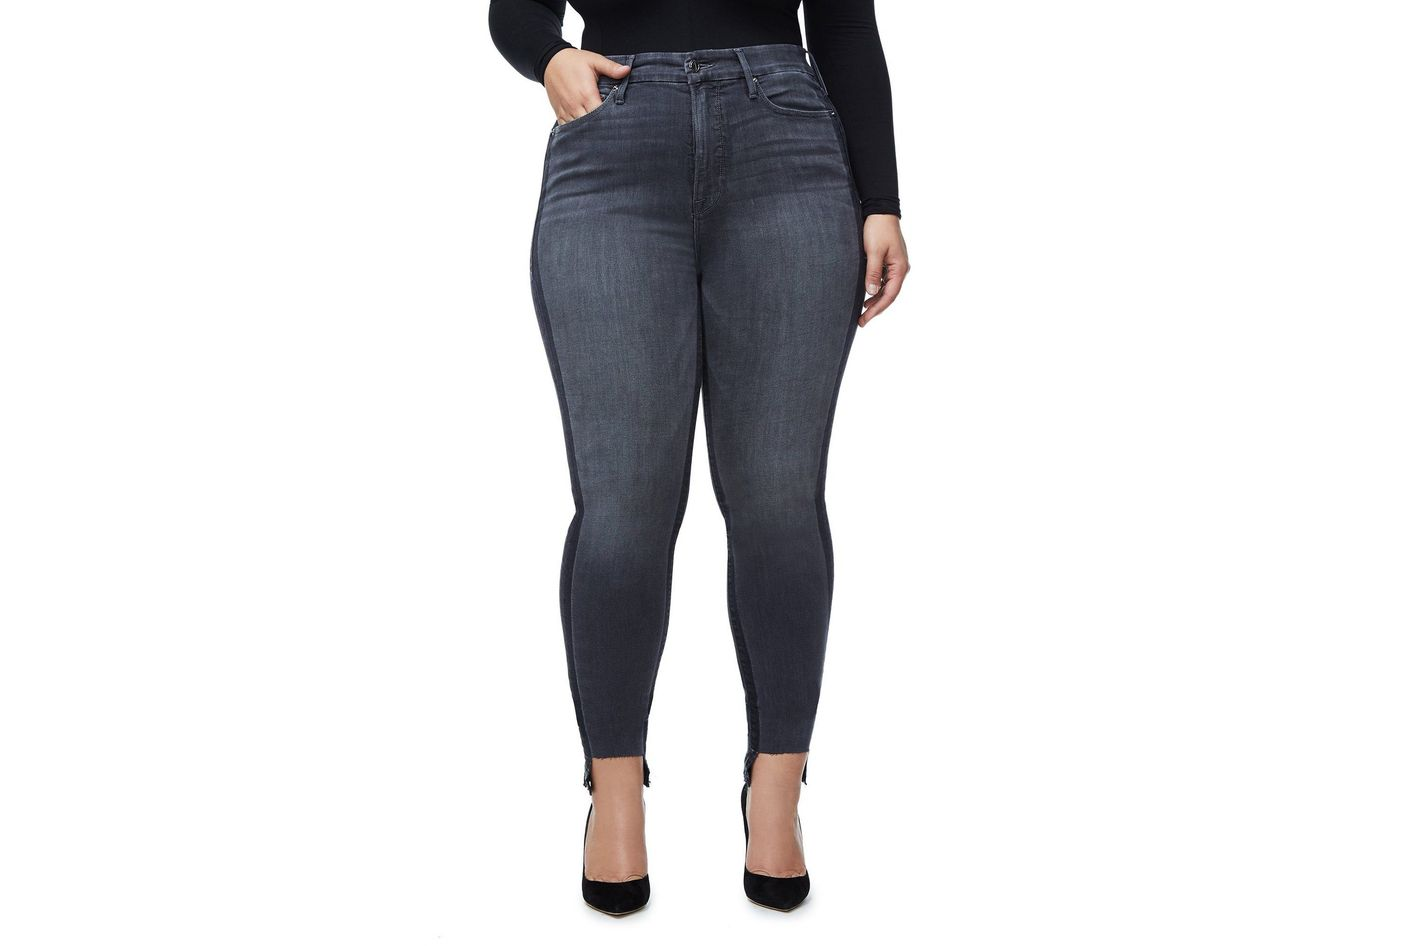 076b14195af71 Best plus-size jeans for petite women. Good American Good Legs Shadow  Tunnel Hem